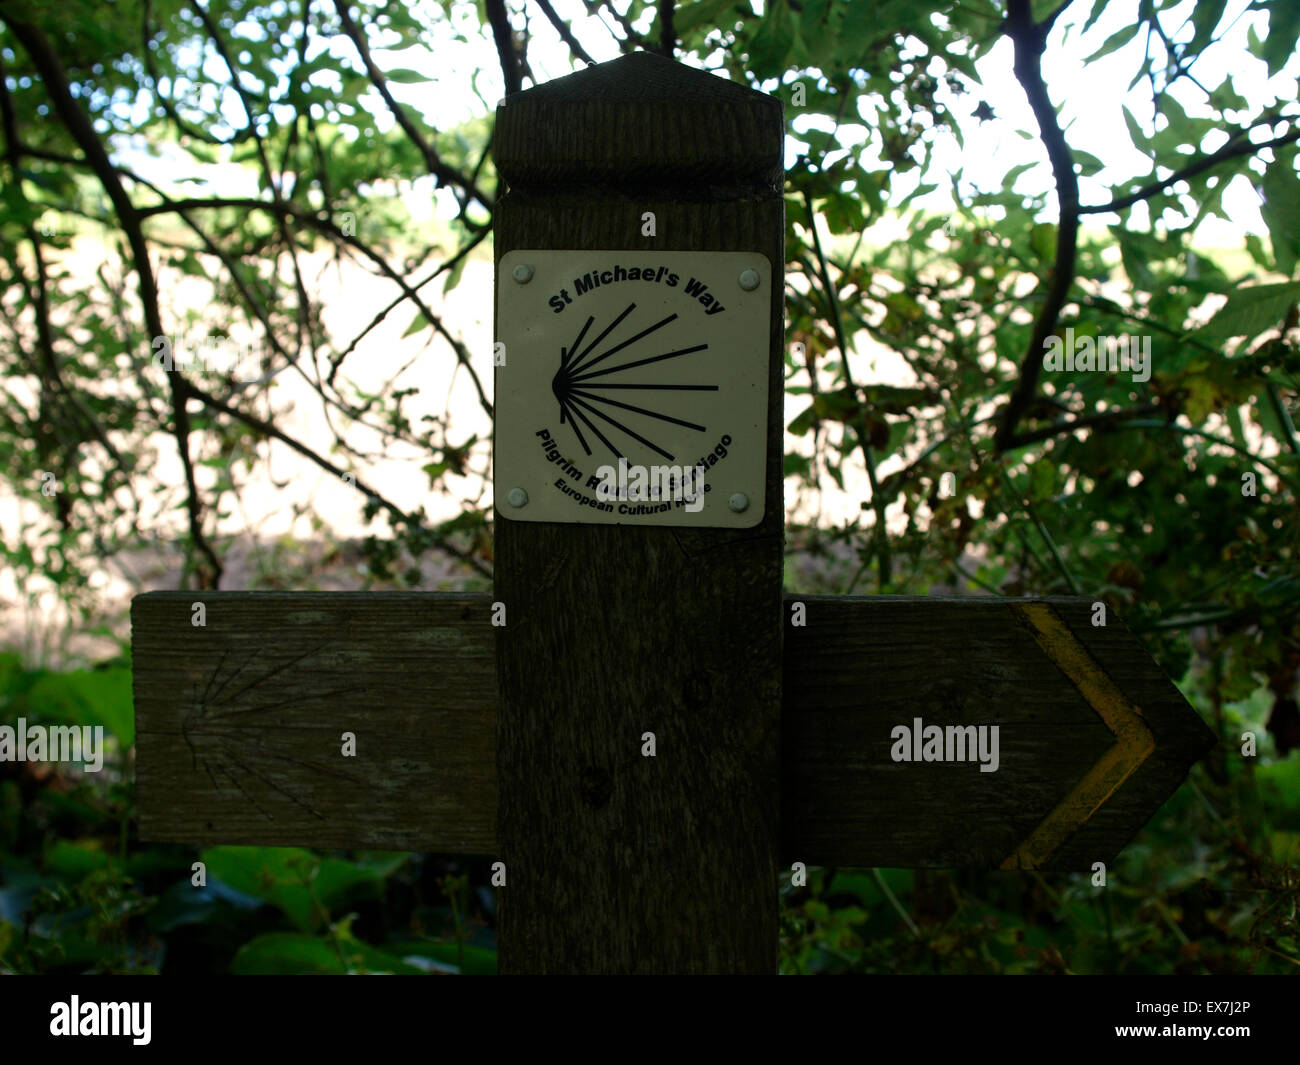 Footpath sign for St Michael's Way, Pilgrim Route to Santiago at Gulval, Long Rock, Cornwall, UK - Stock Image